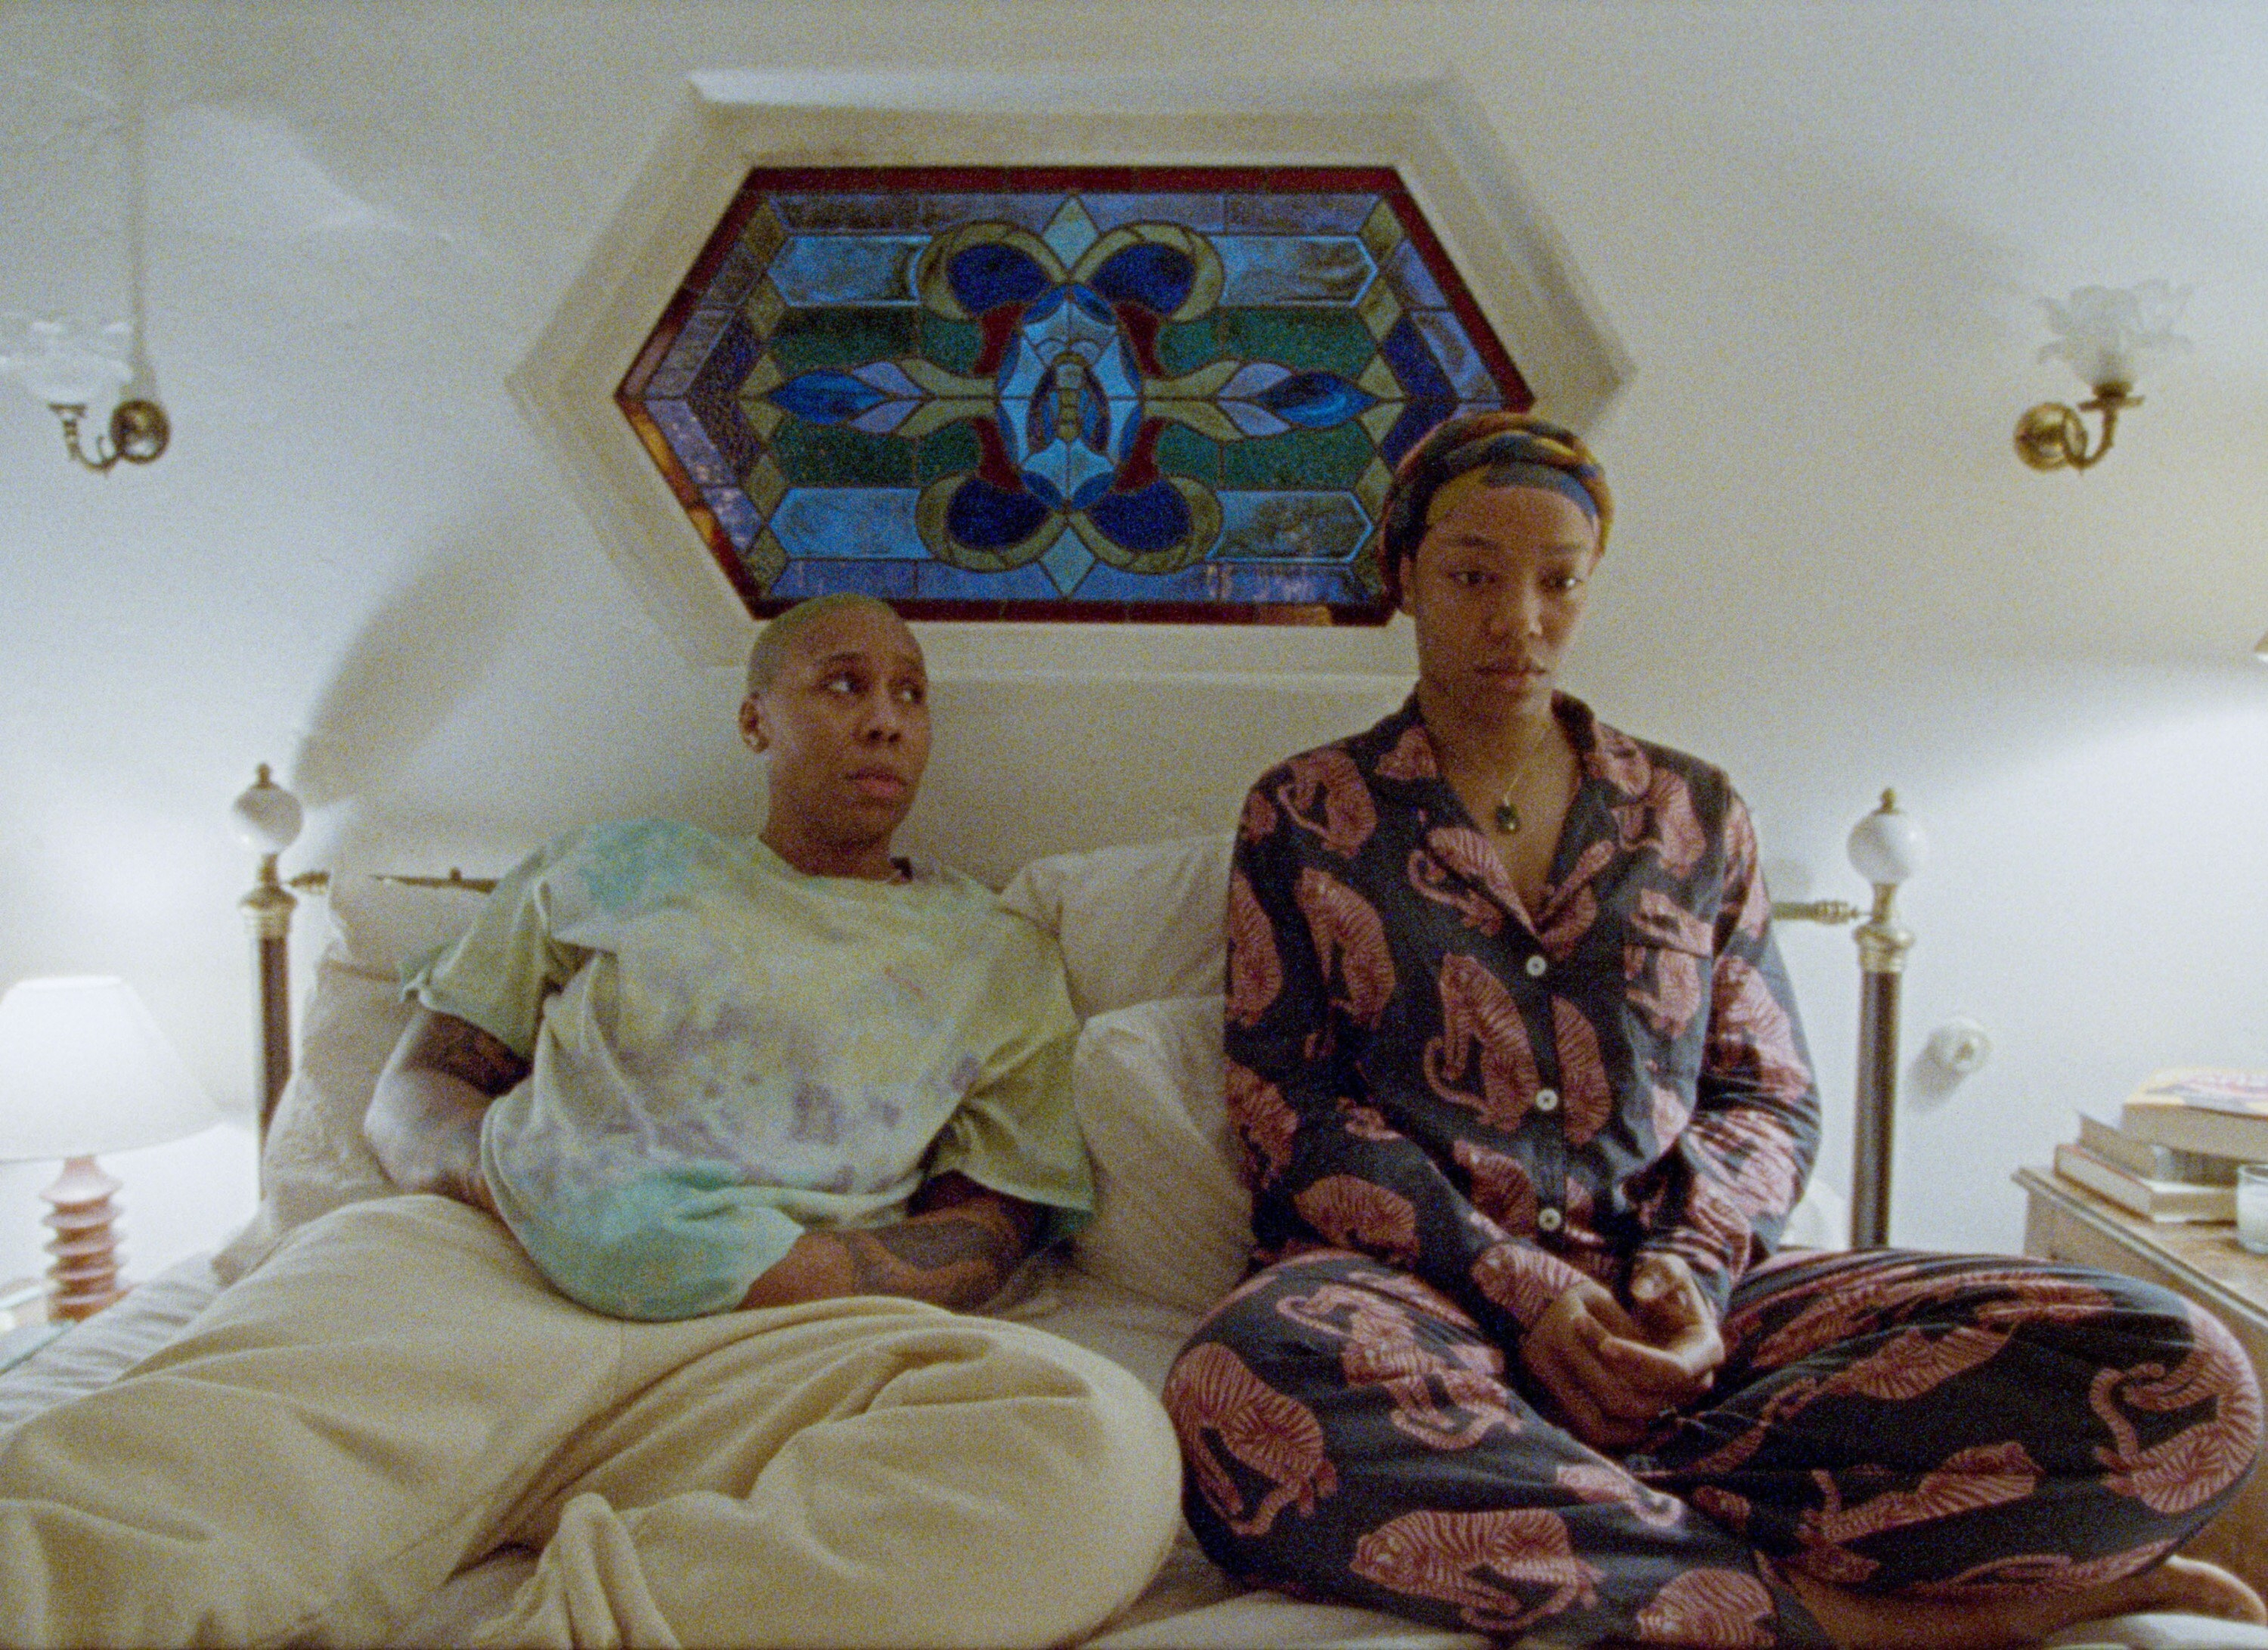 Denise in oversized tie-dyed shirt and sweats with Alicia in tiger pattern pajamas sitting in bed looking very concerned